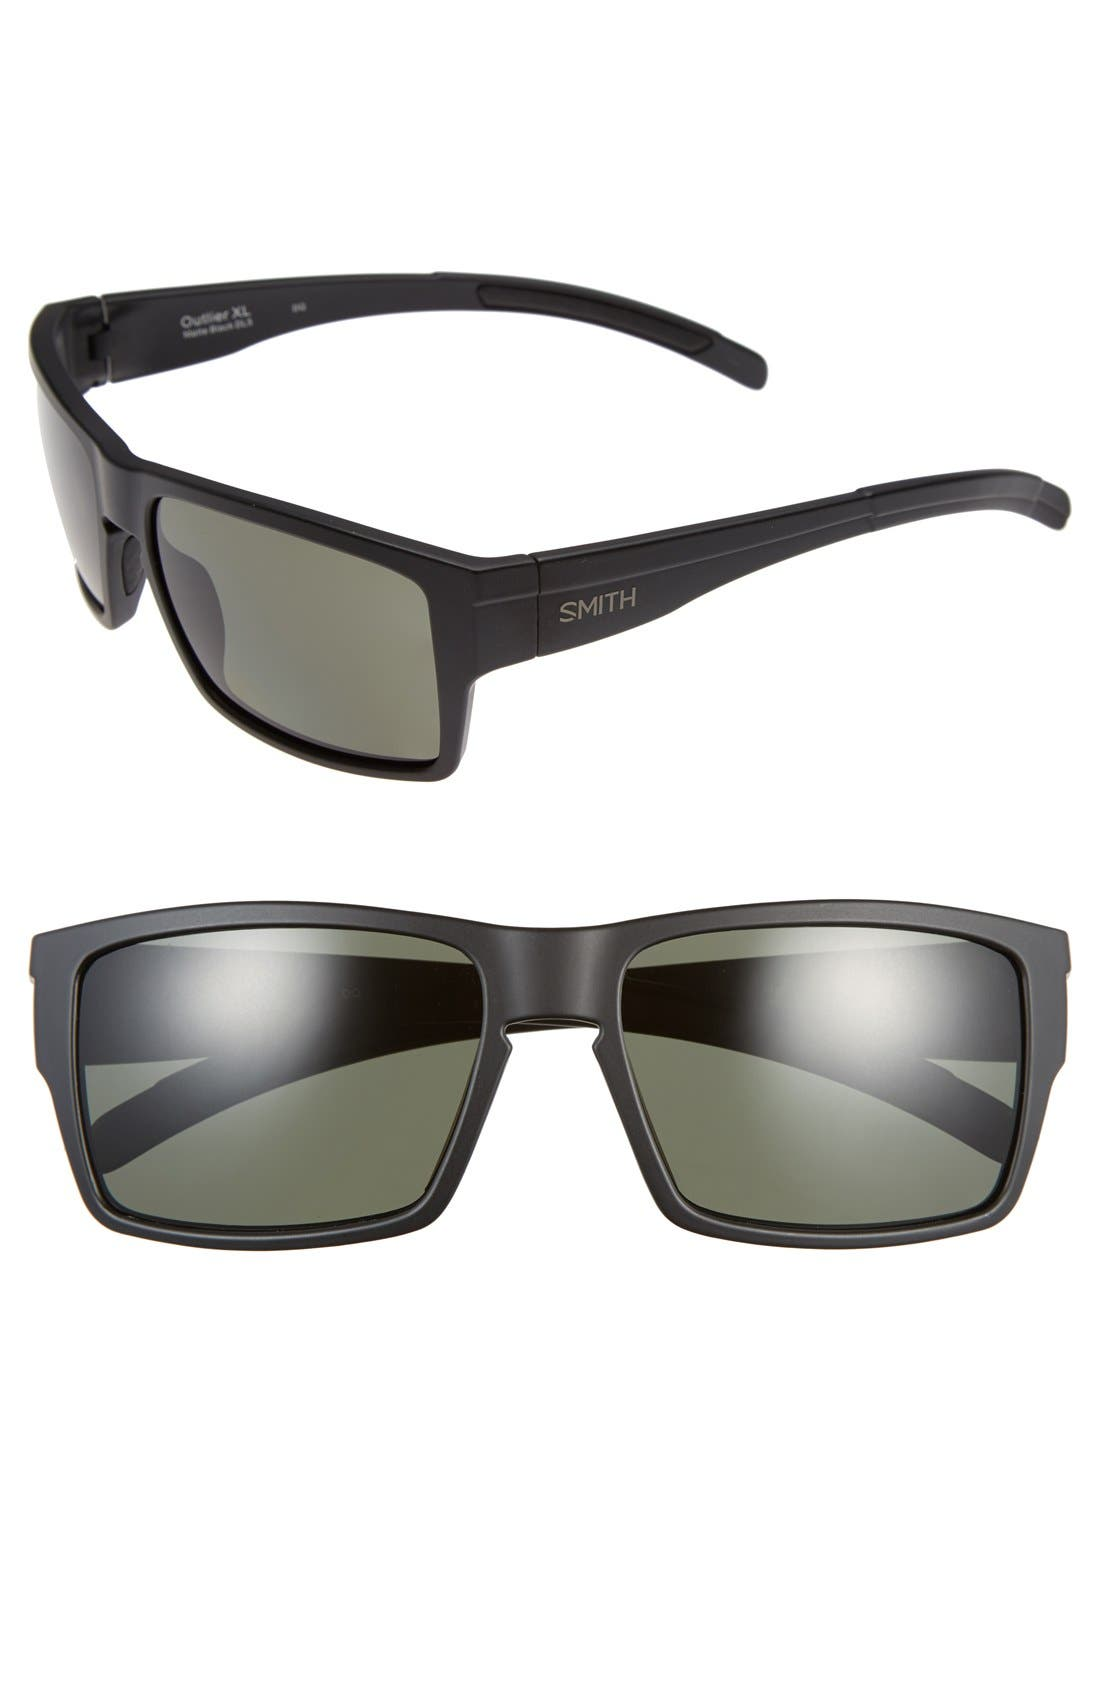 SMITH Outlier XL 56mm Polarized Sunglasses